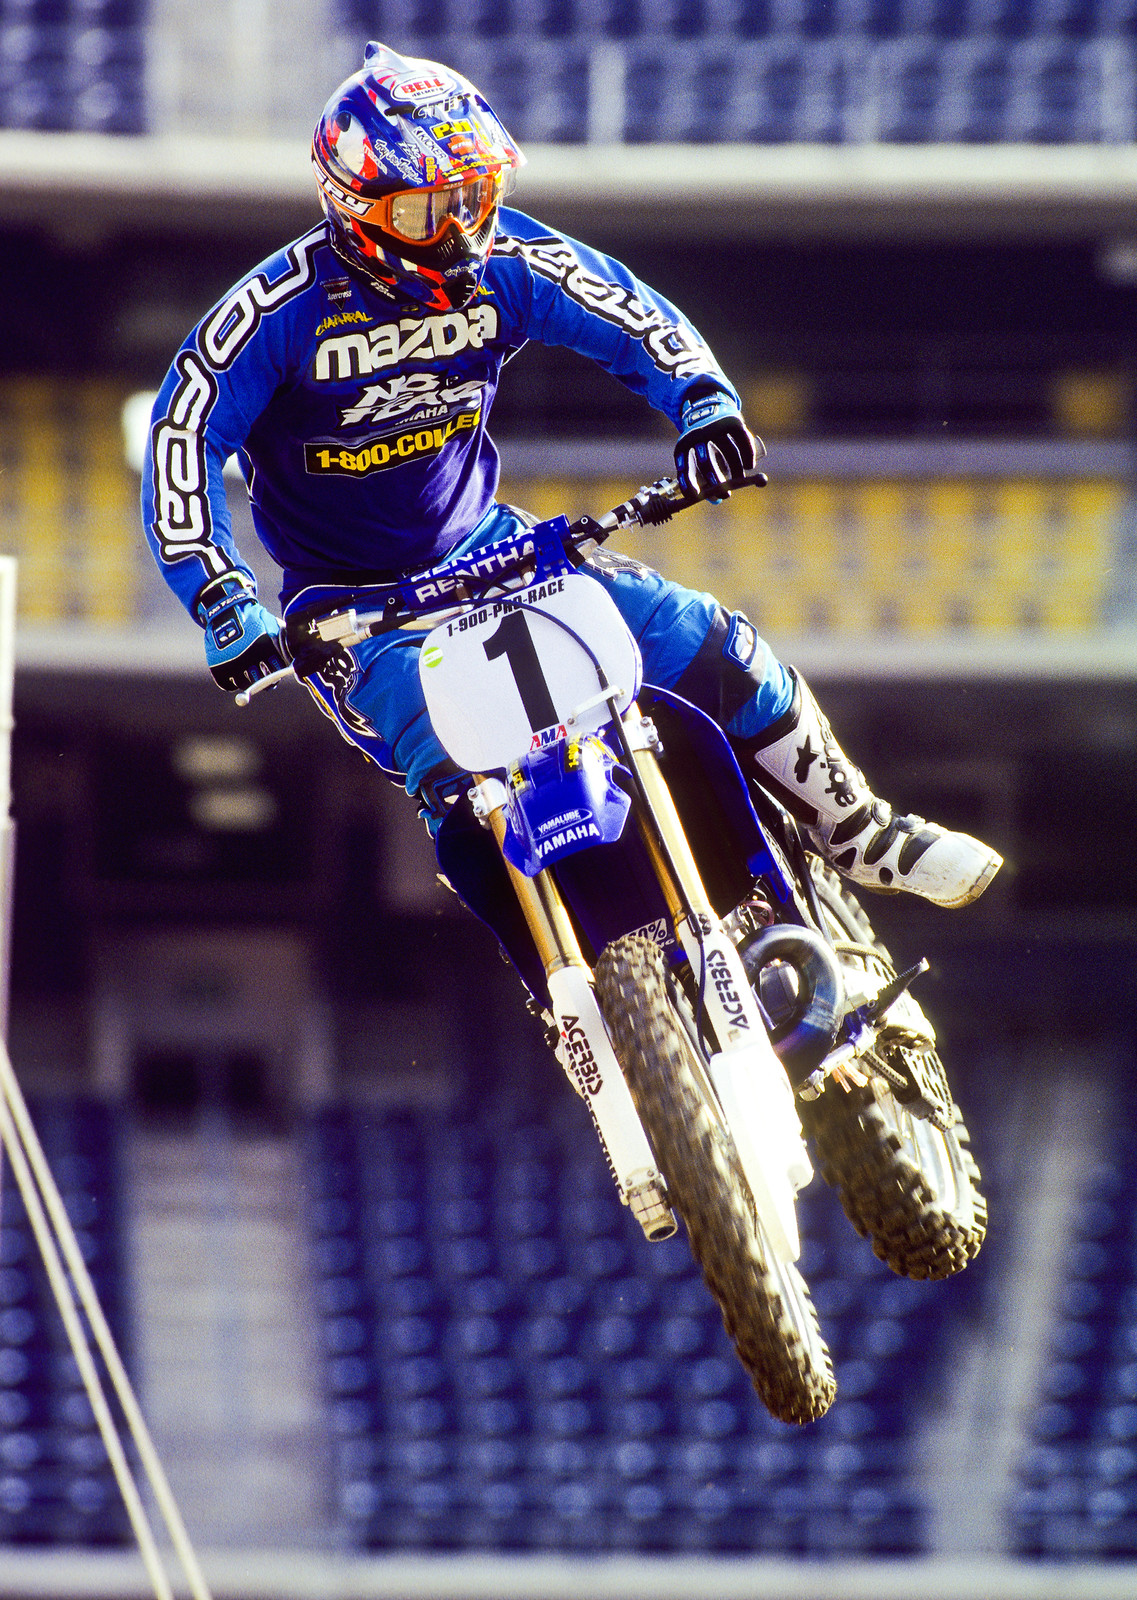 Of McGrath's seven supercross titles, he wasn't leading after four rounds in only one of them, 1999.